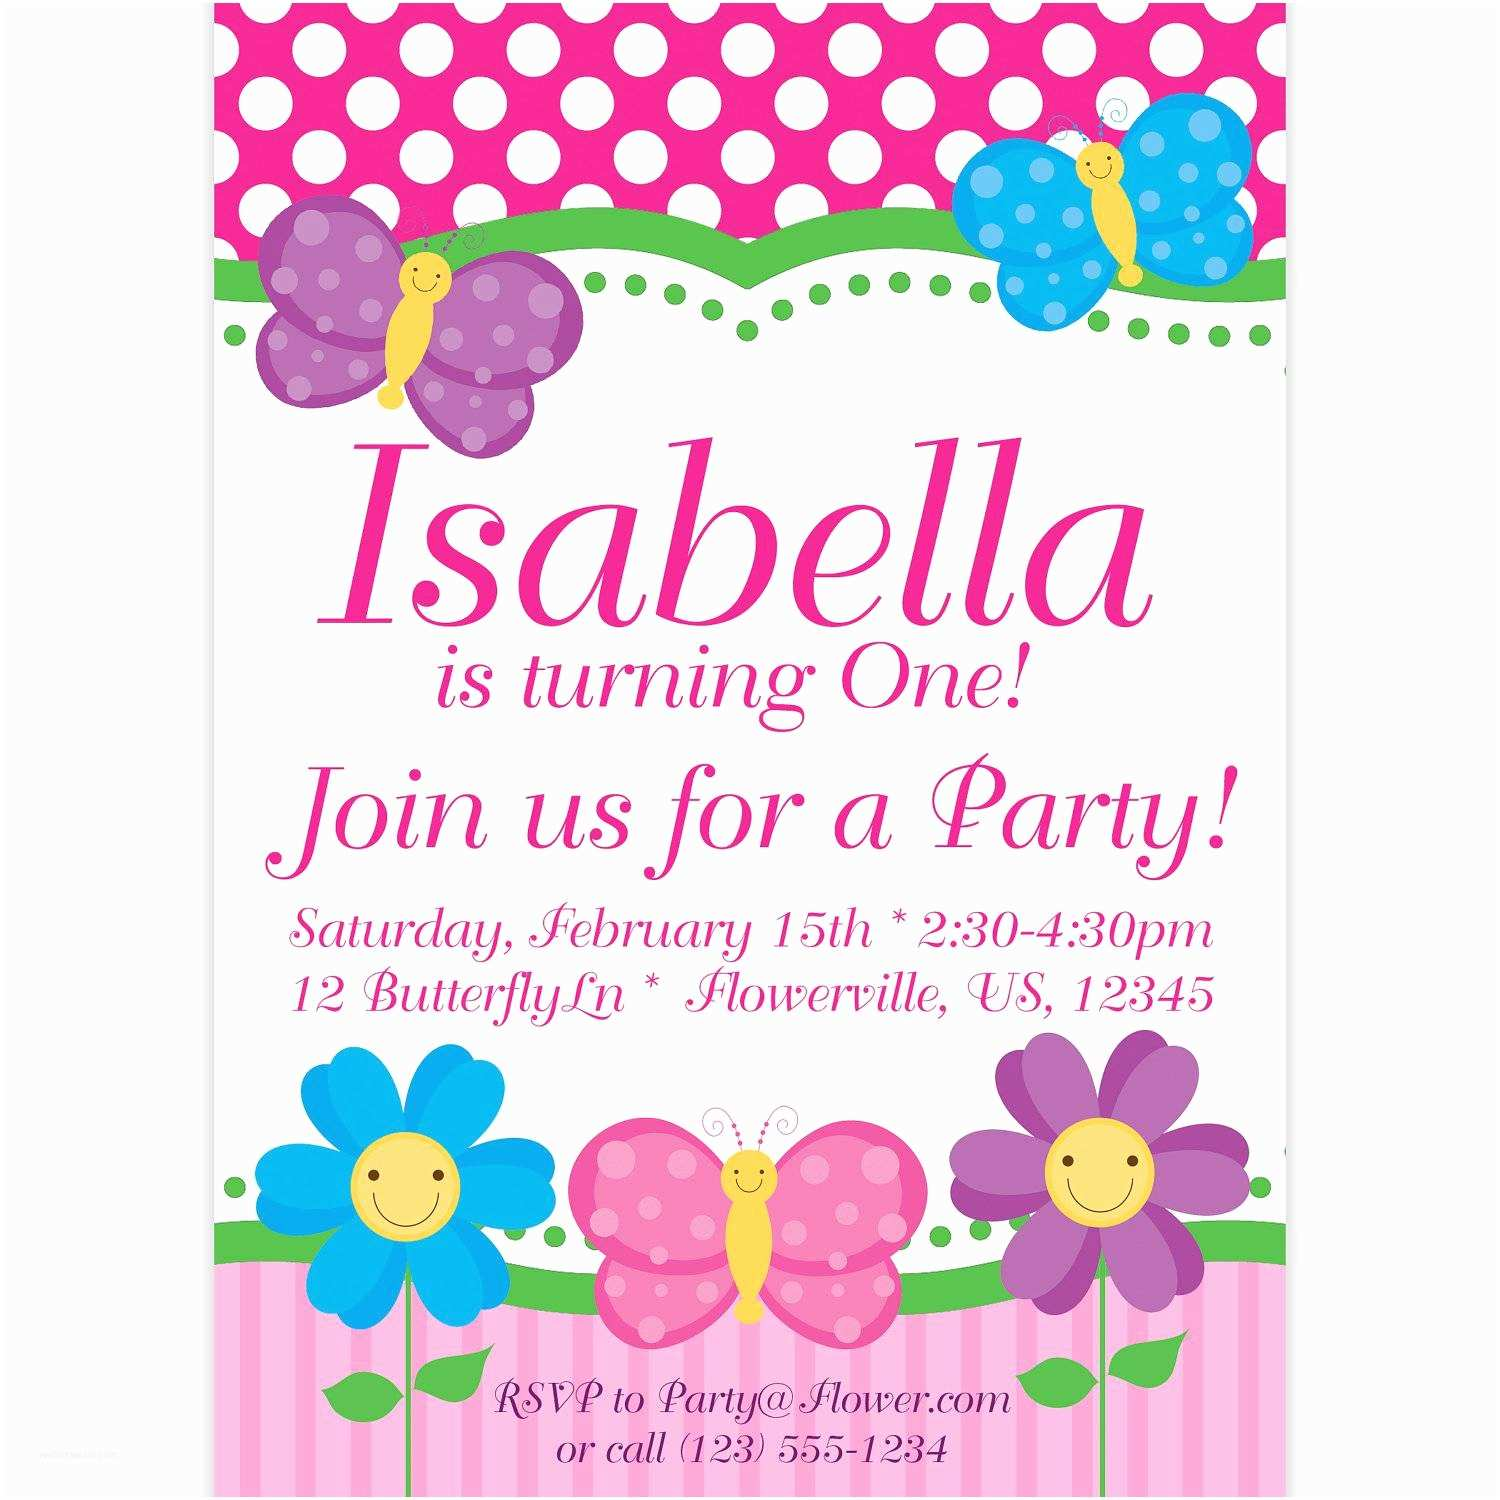 Customized Birthday Invitations Personalized Party Invites